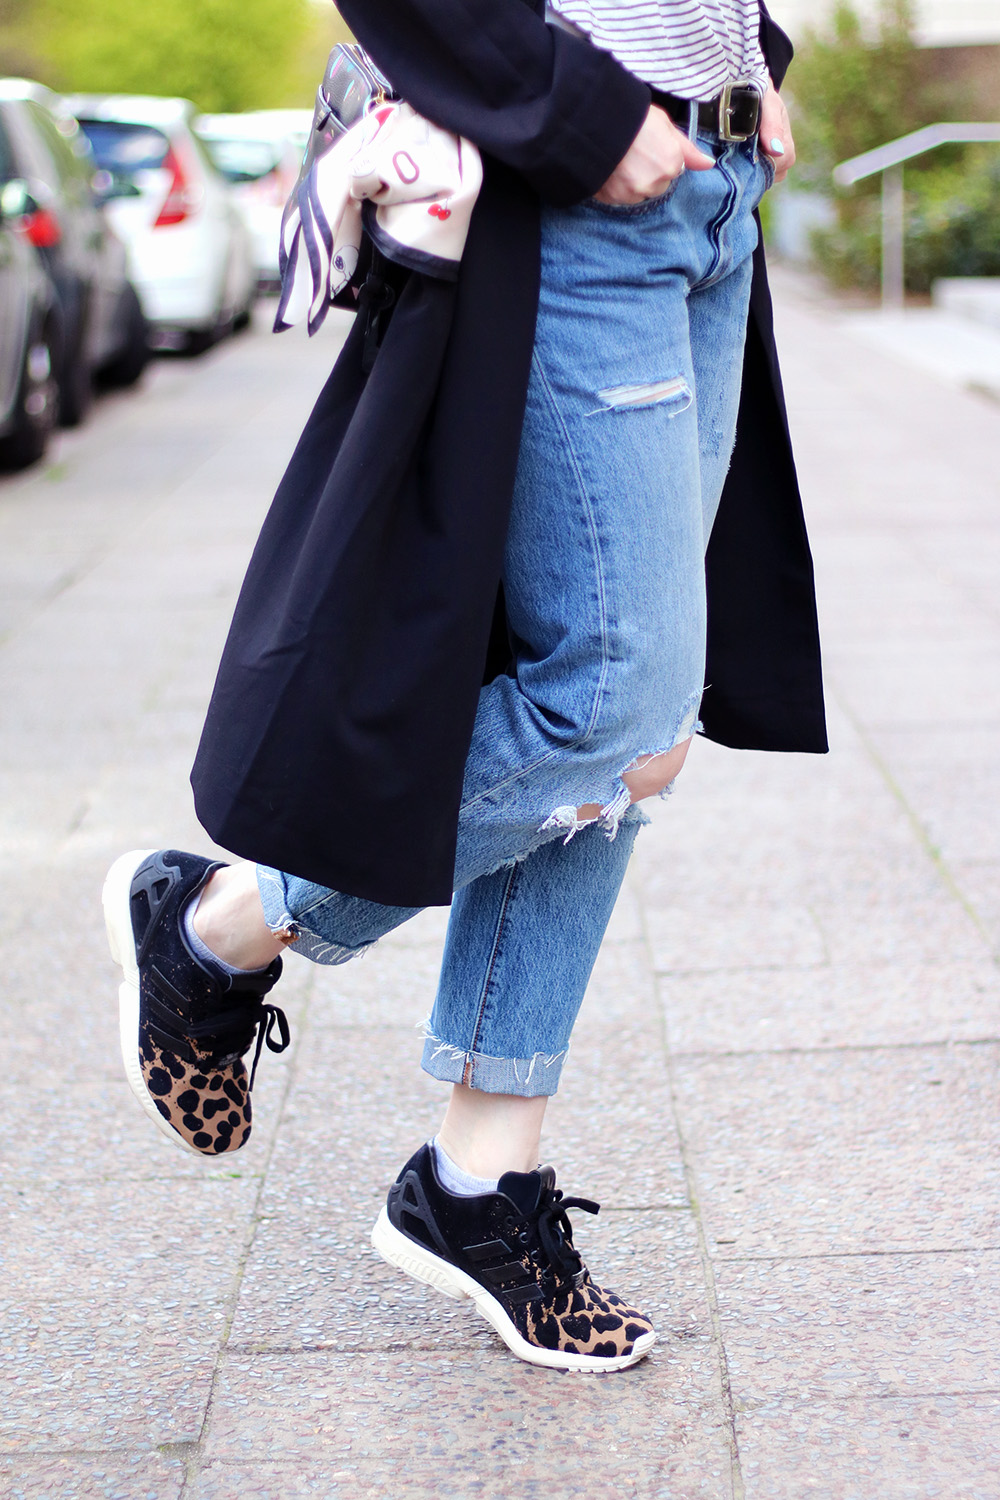 Details, Schuhe, Sneaker, adidas, Leo Muster, Ripped Jeans stylen, Levi's 501 ct, Jeans, adidas, Sneaker, Trenchcoat, Trend, Frühling, Streifen, blonde Haare, helle Haut, Influencer, Deutschland, Berlin, Streetstyle, Mode Blog, Modeblog, Advance Your Style, advanceyourstyle